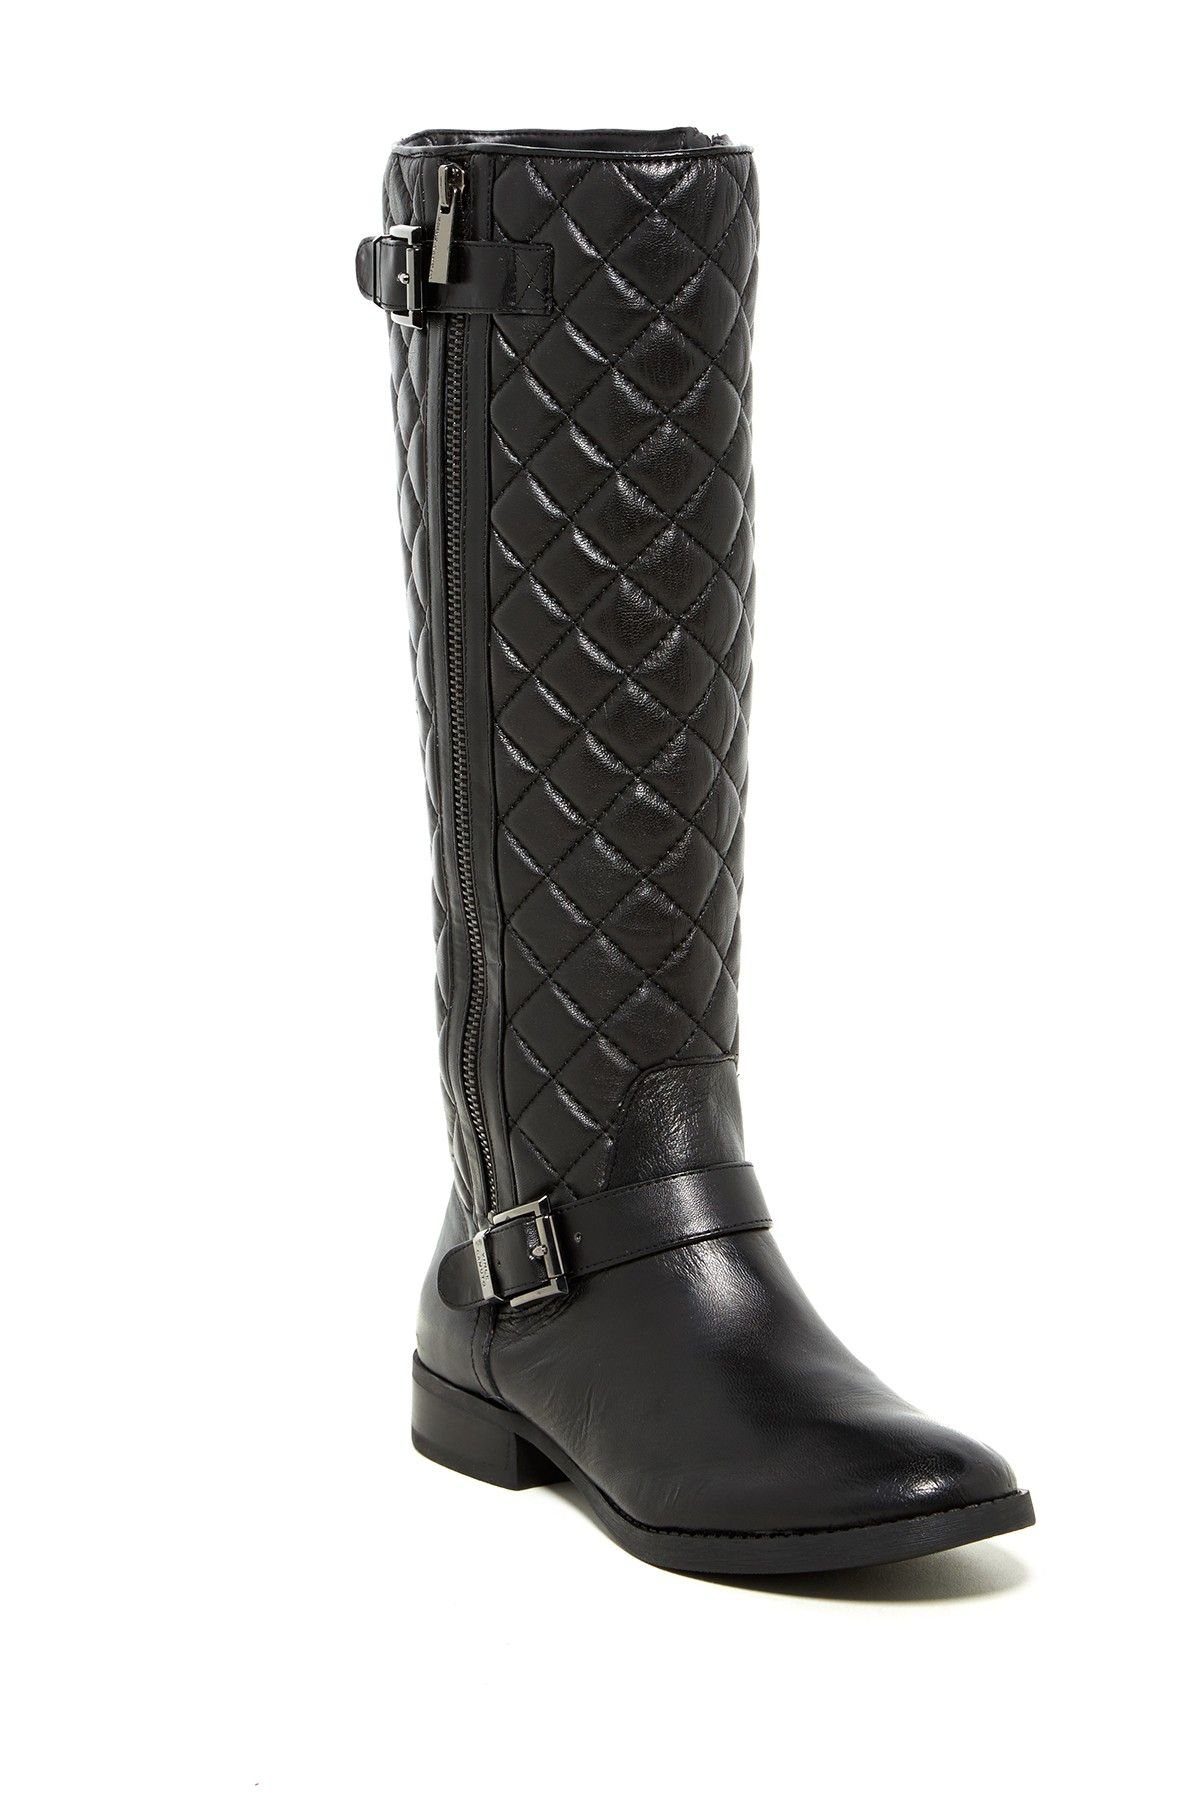 Vince Camuto Womens Black Boots Leather Boot Faya Riding Wide Calf